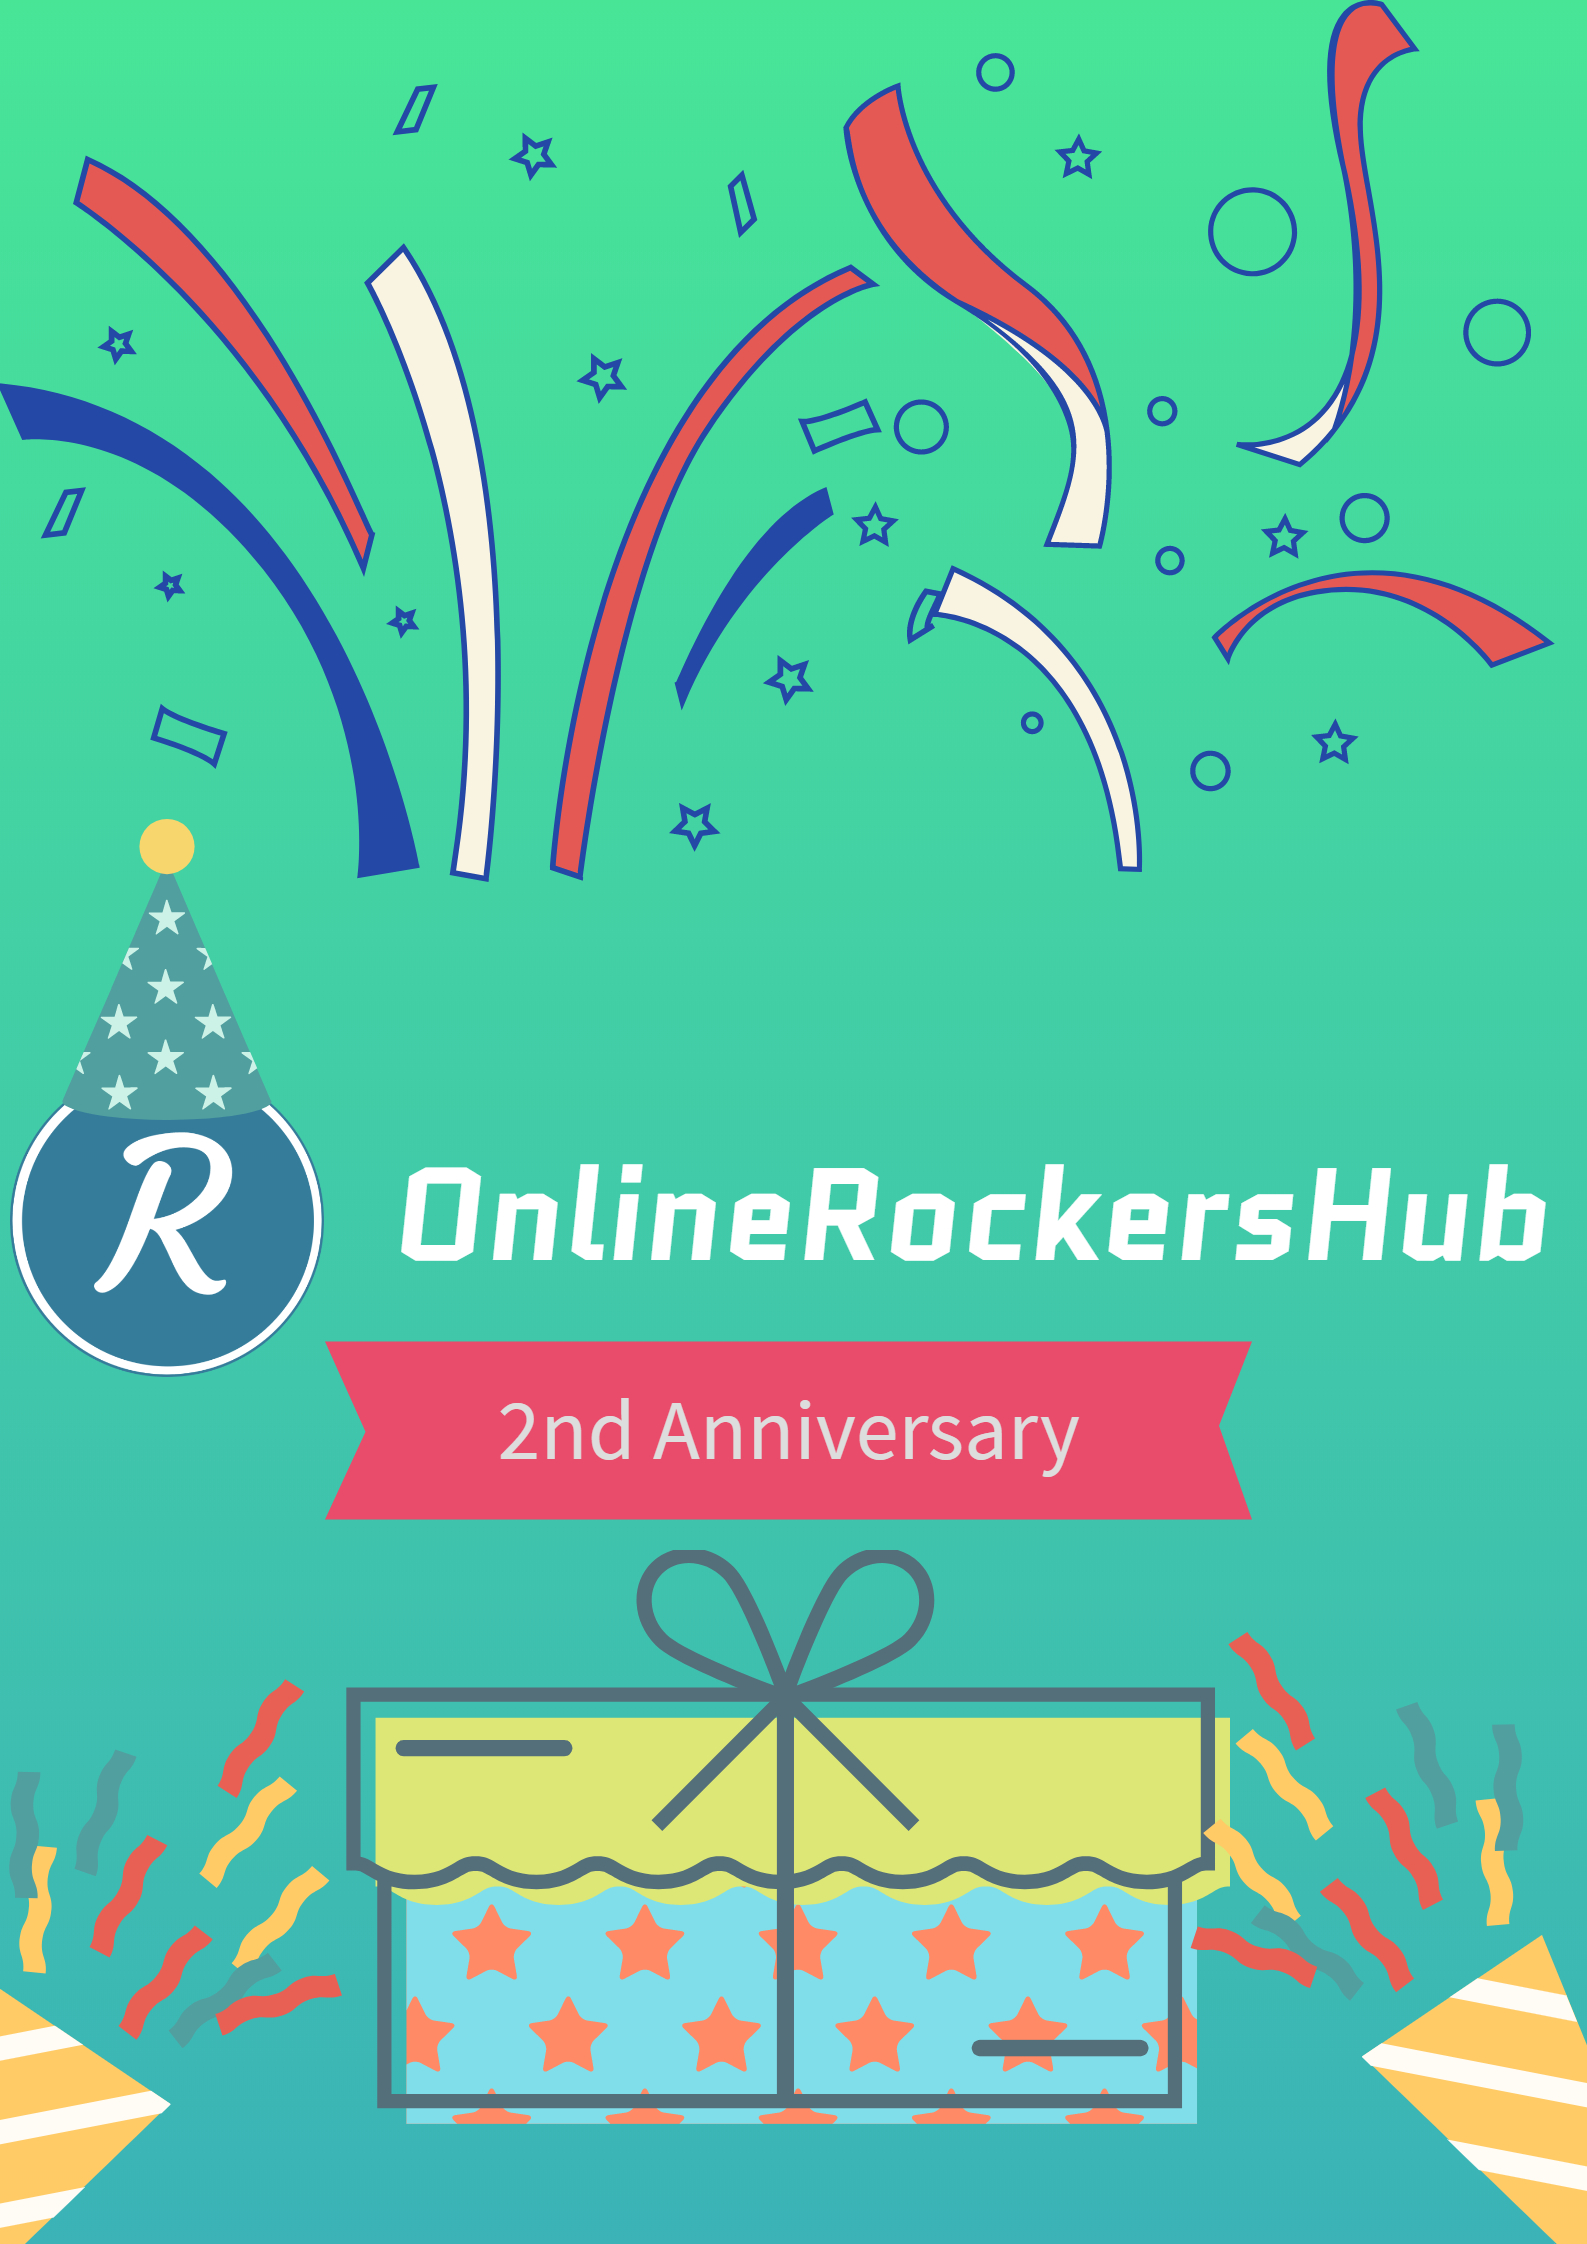 Happy 2nd Anniversary OnlineRockersHub